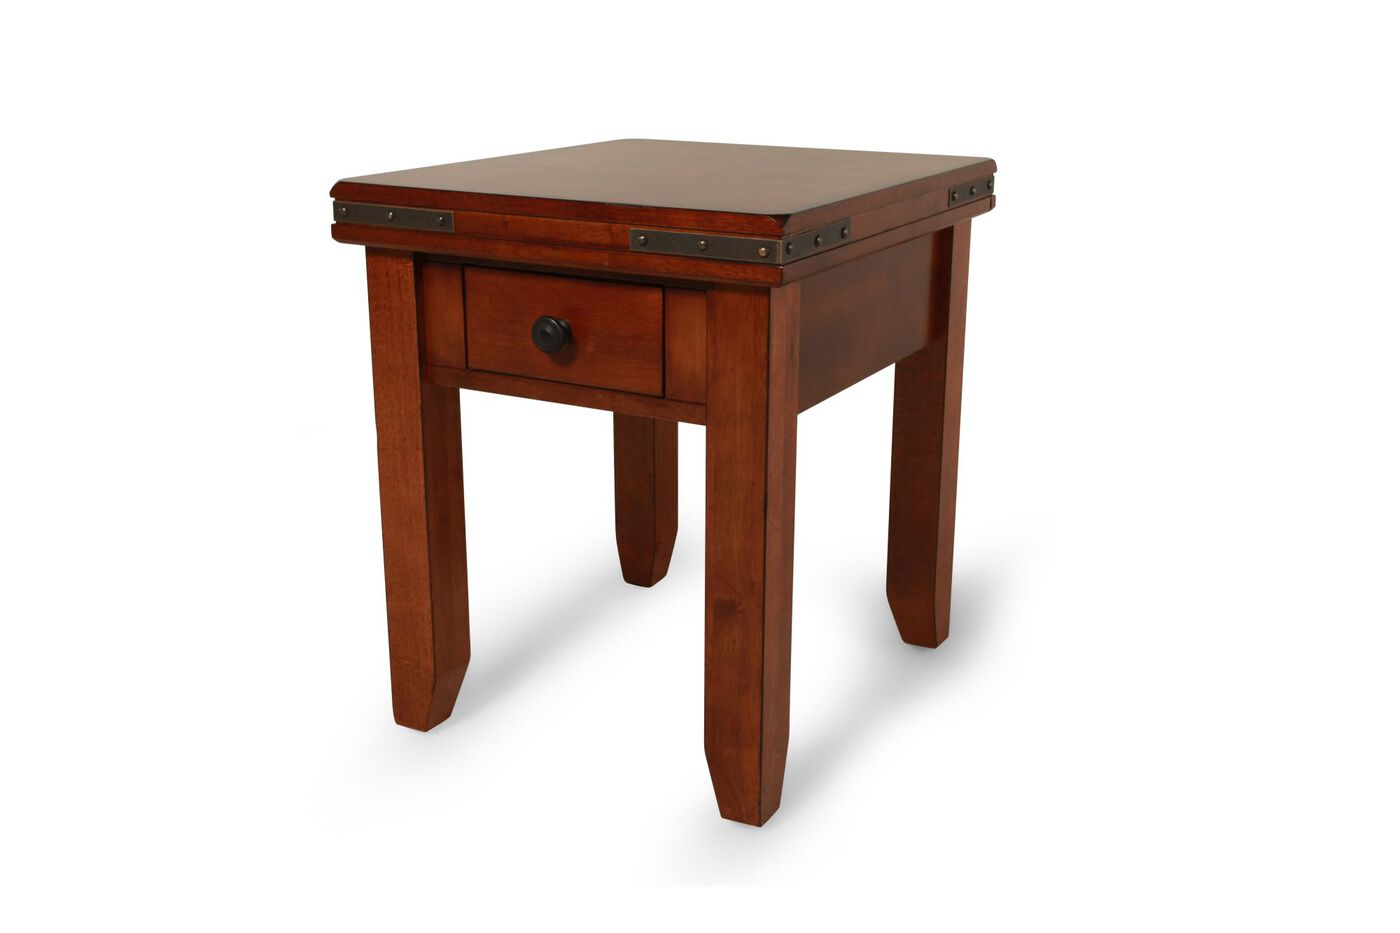 Square Traditional Mango Wood End Table In Warm Brown Mathis Brothers Furniture